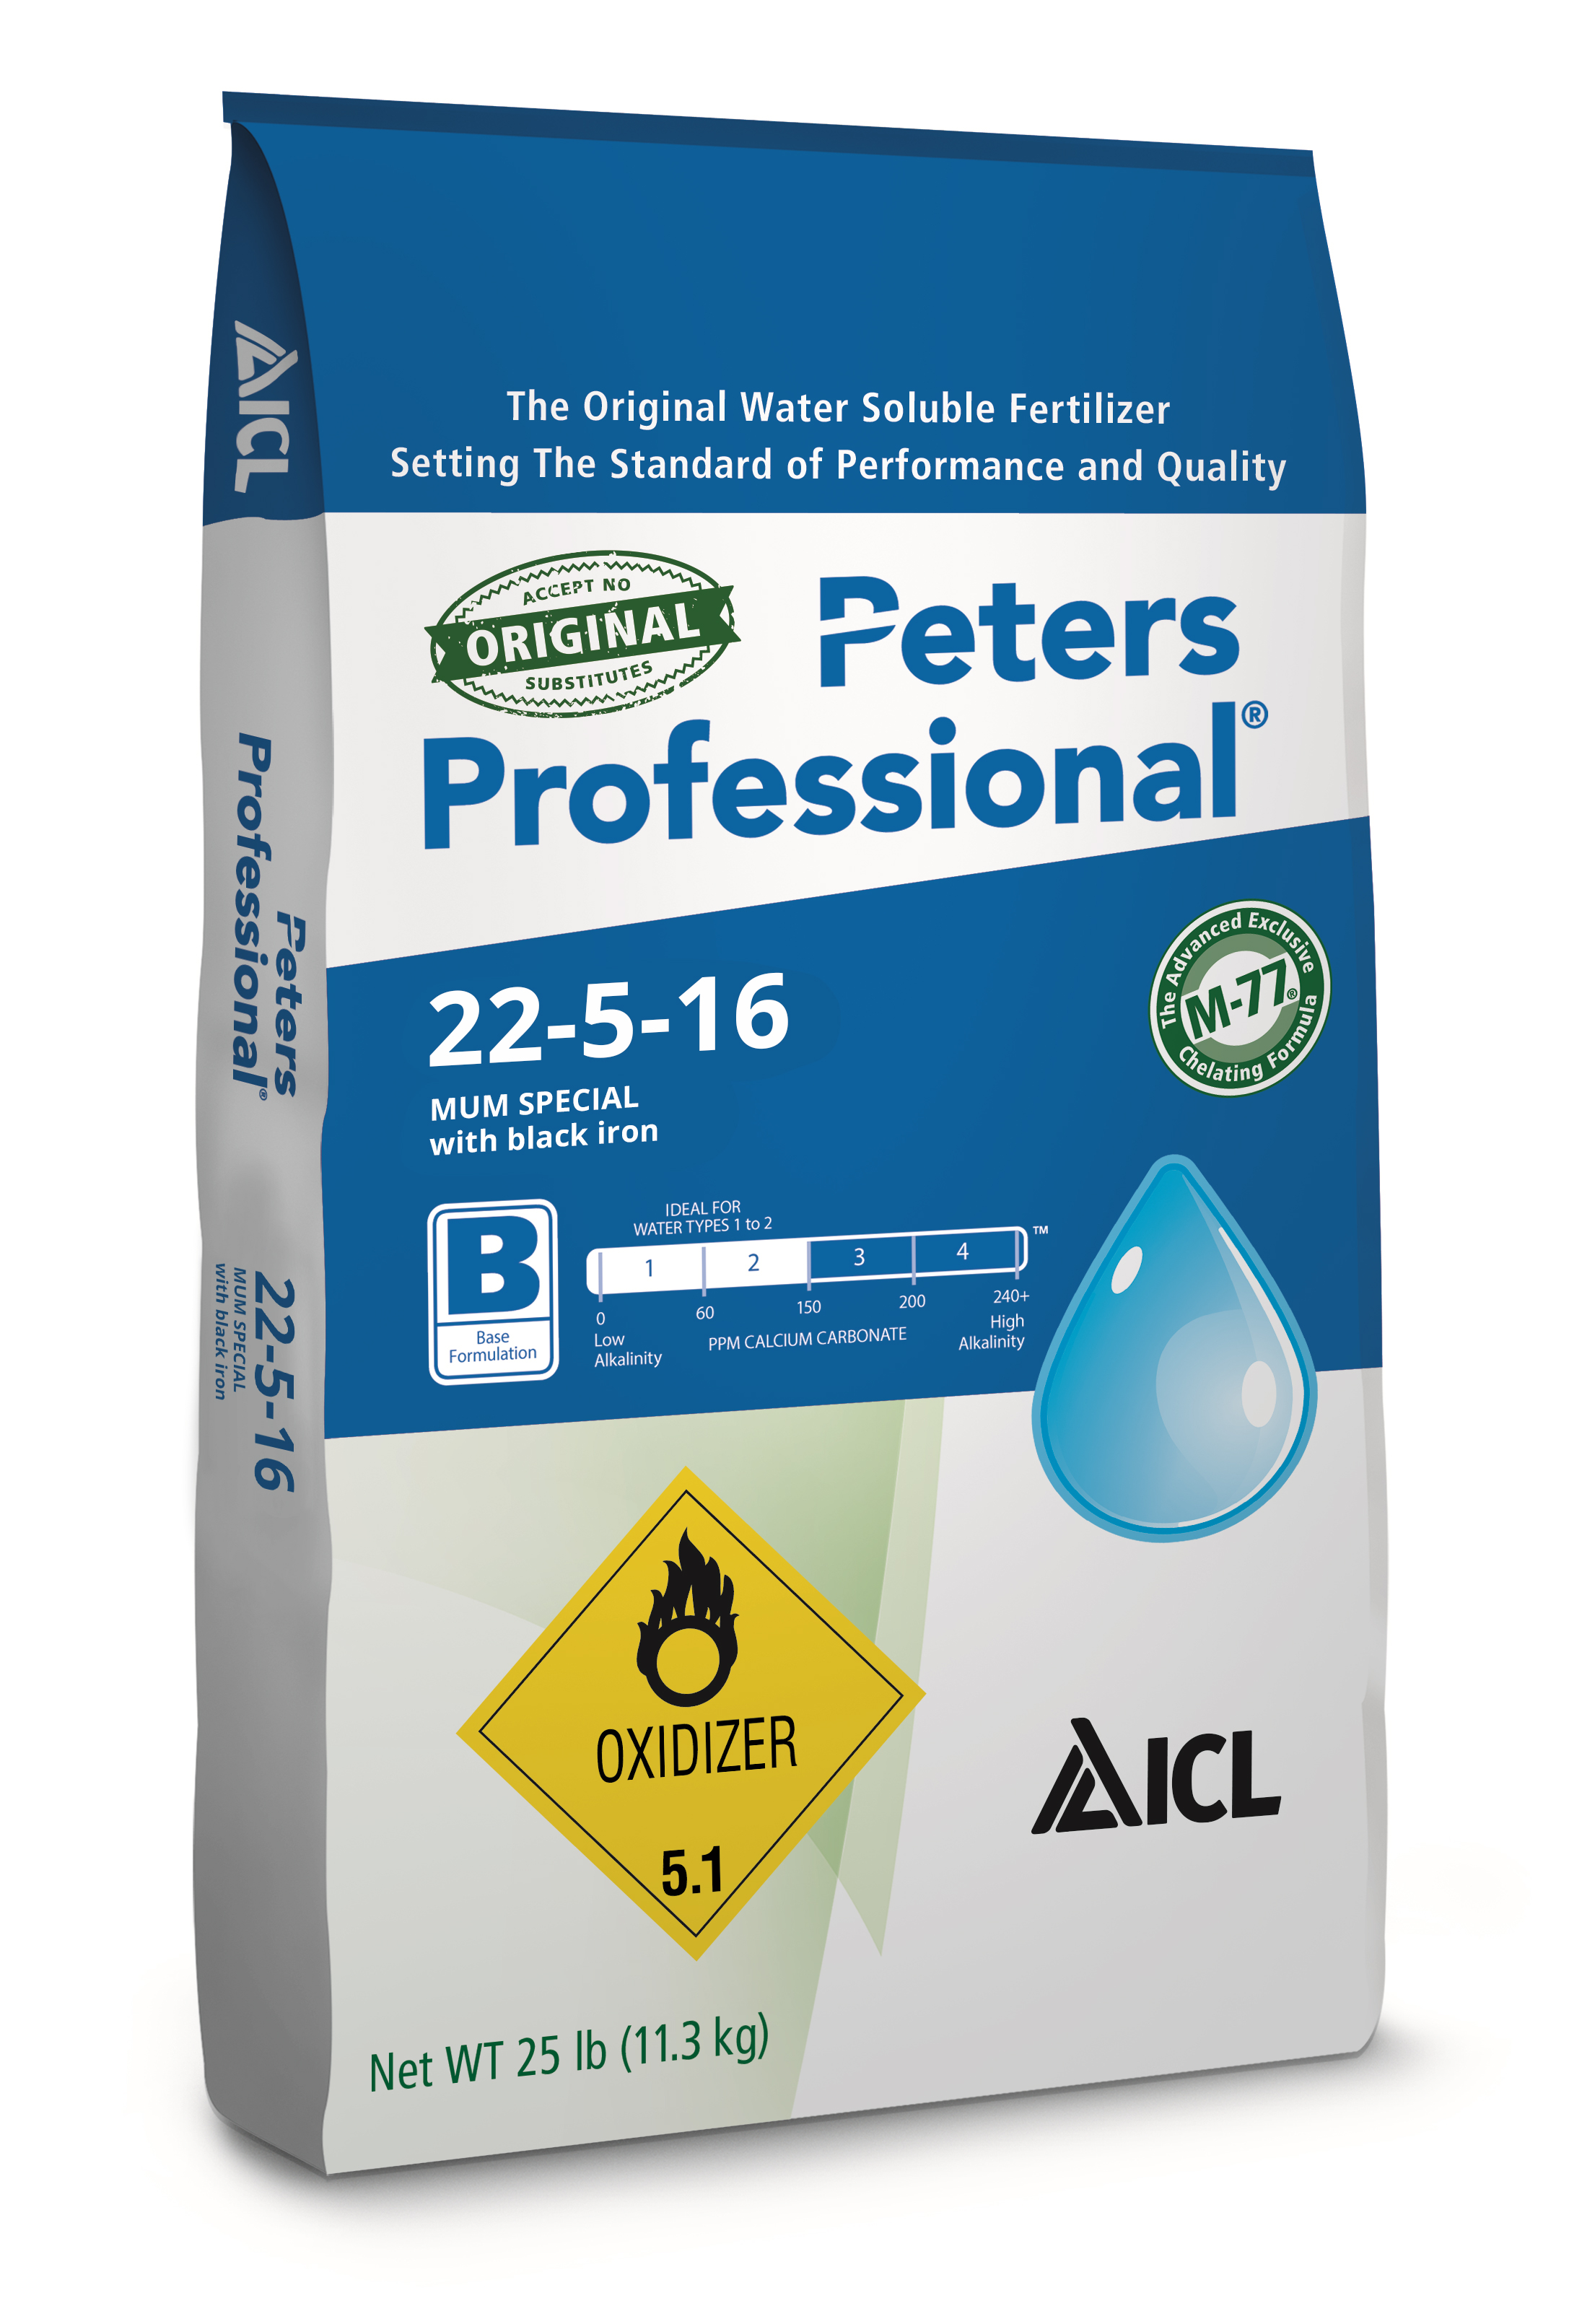 Peters Professional 22-5-16 Mum Special with black iron